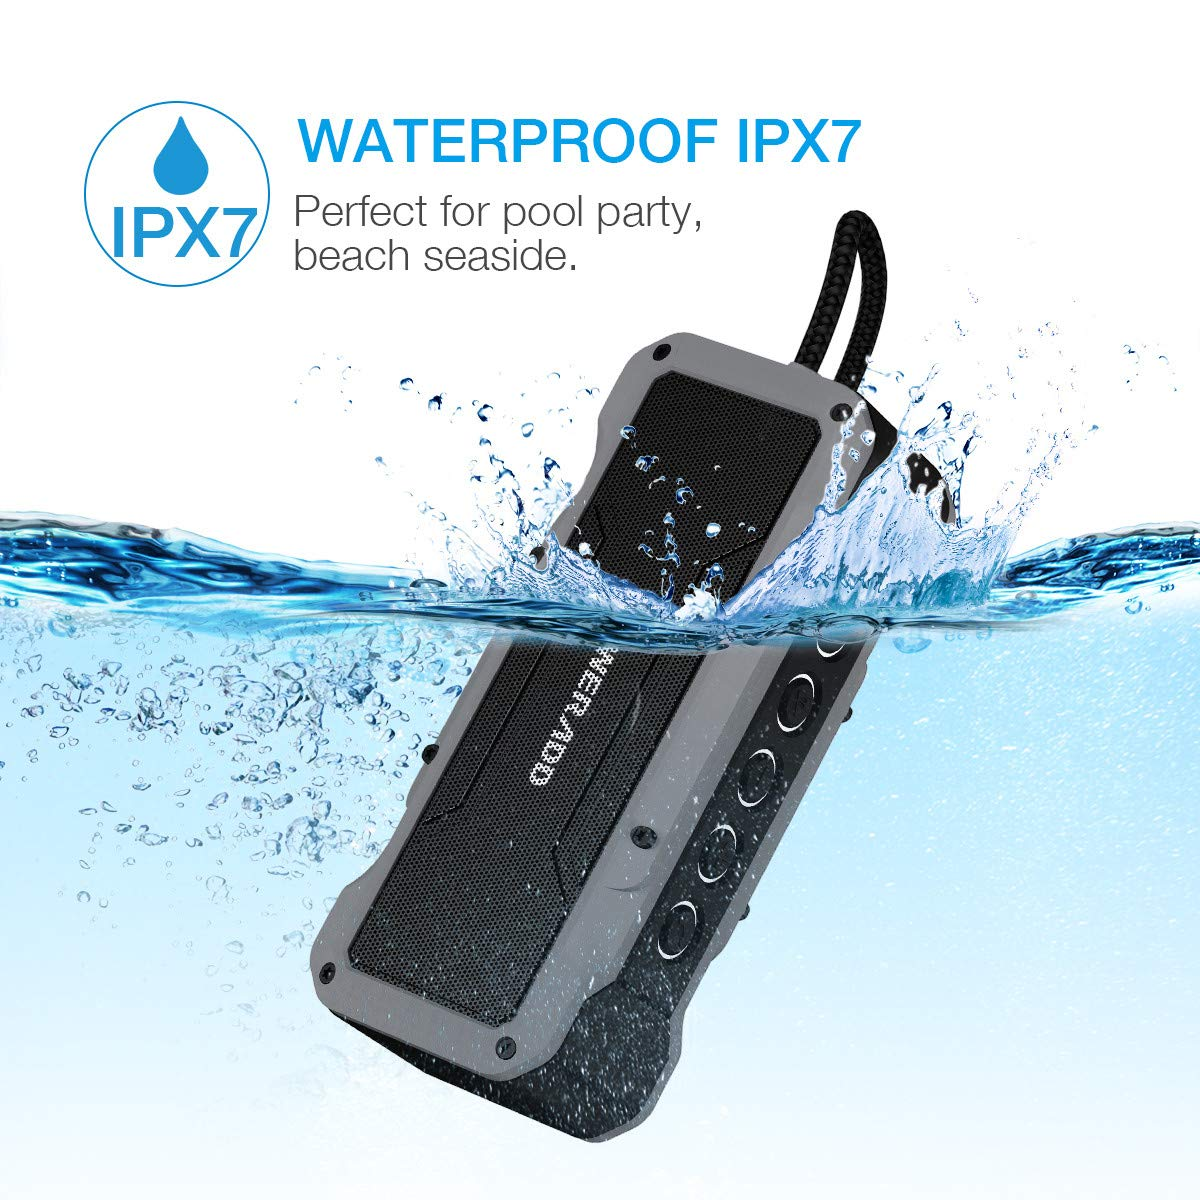 Poweradd Bluetooth Speaker, MusicFly 36W 24 Hours 4000mAh with 4 Speakers(2X13W+ 2X5W), IPX7 Waterproof/Sandproof/ Shockproof, Built in Mic, USB Charging Port for Home,Outdoors,Travel